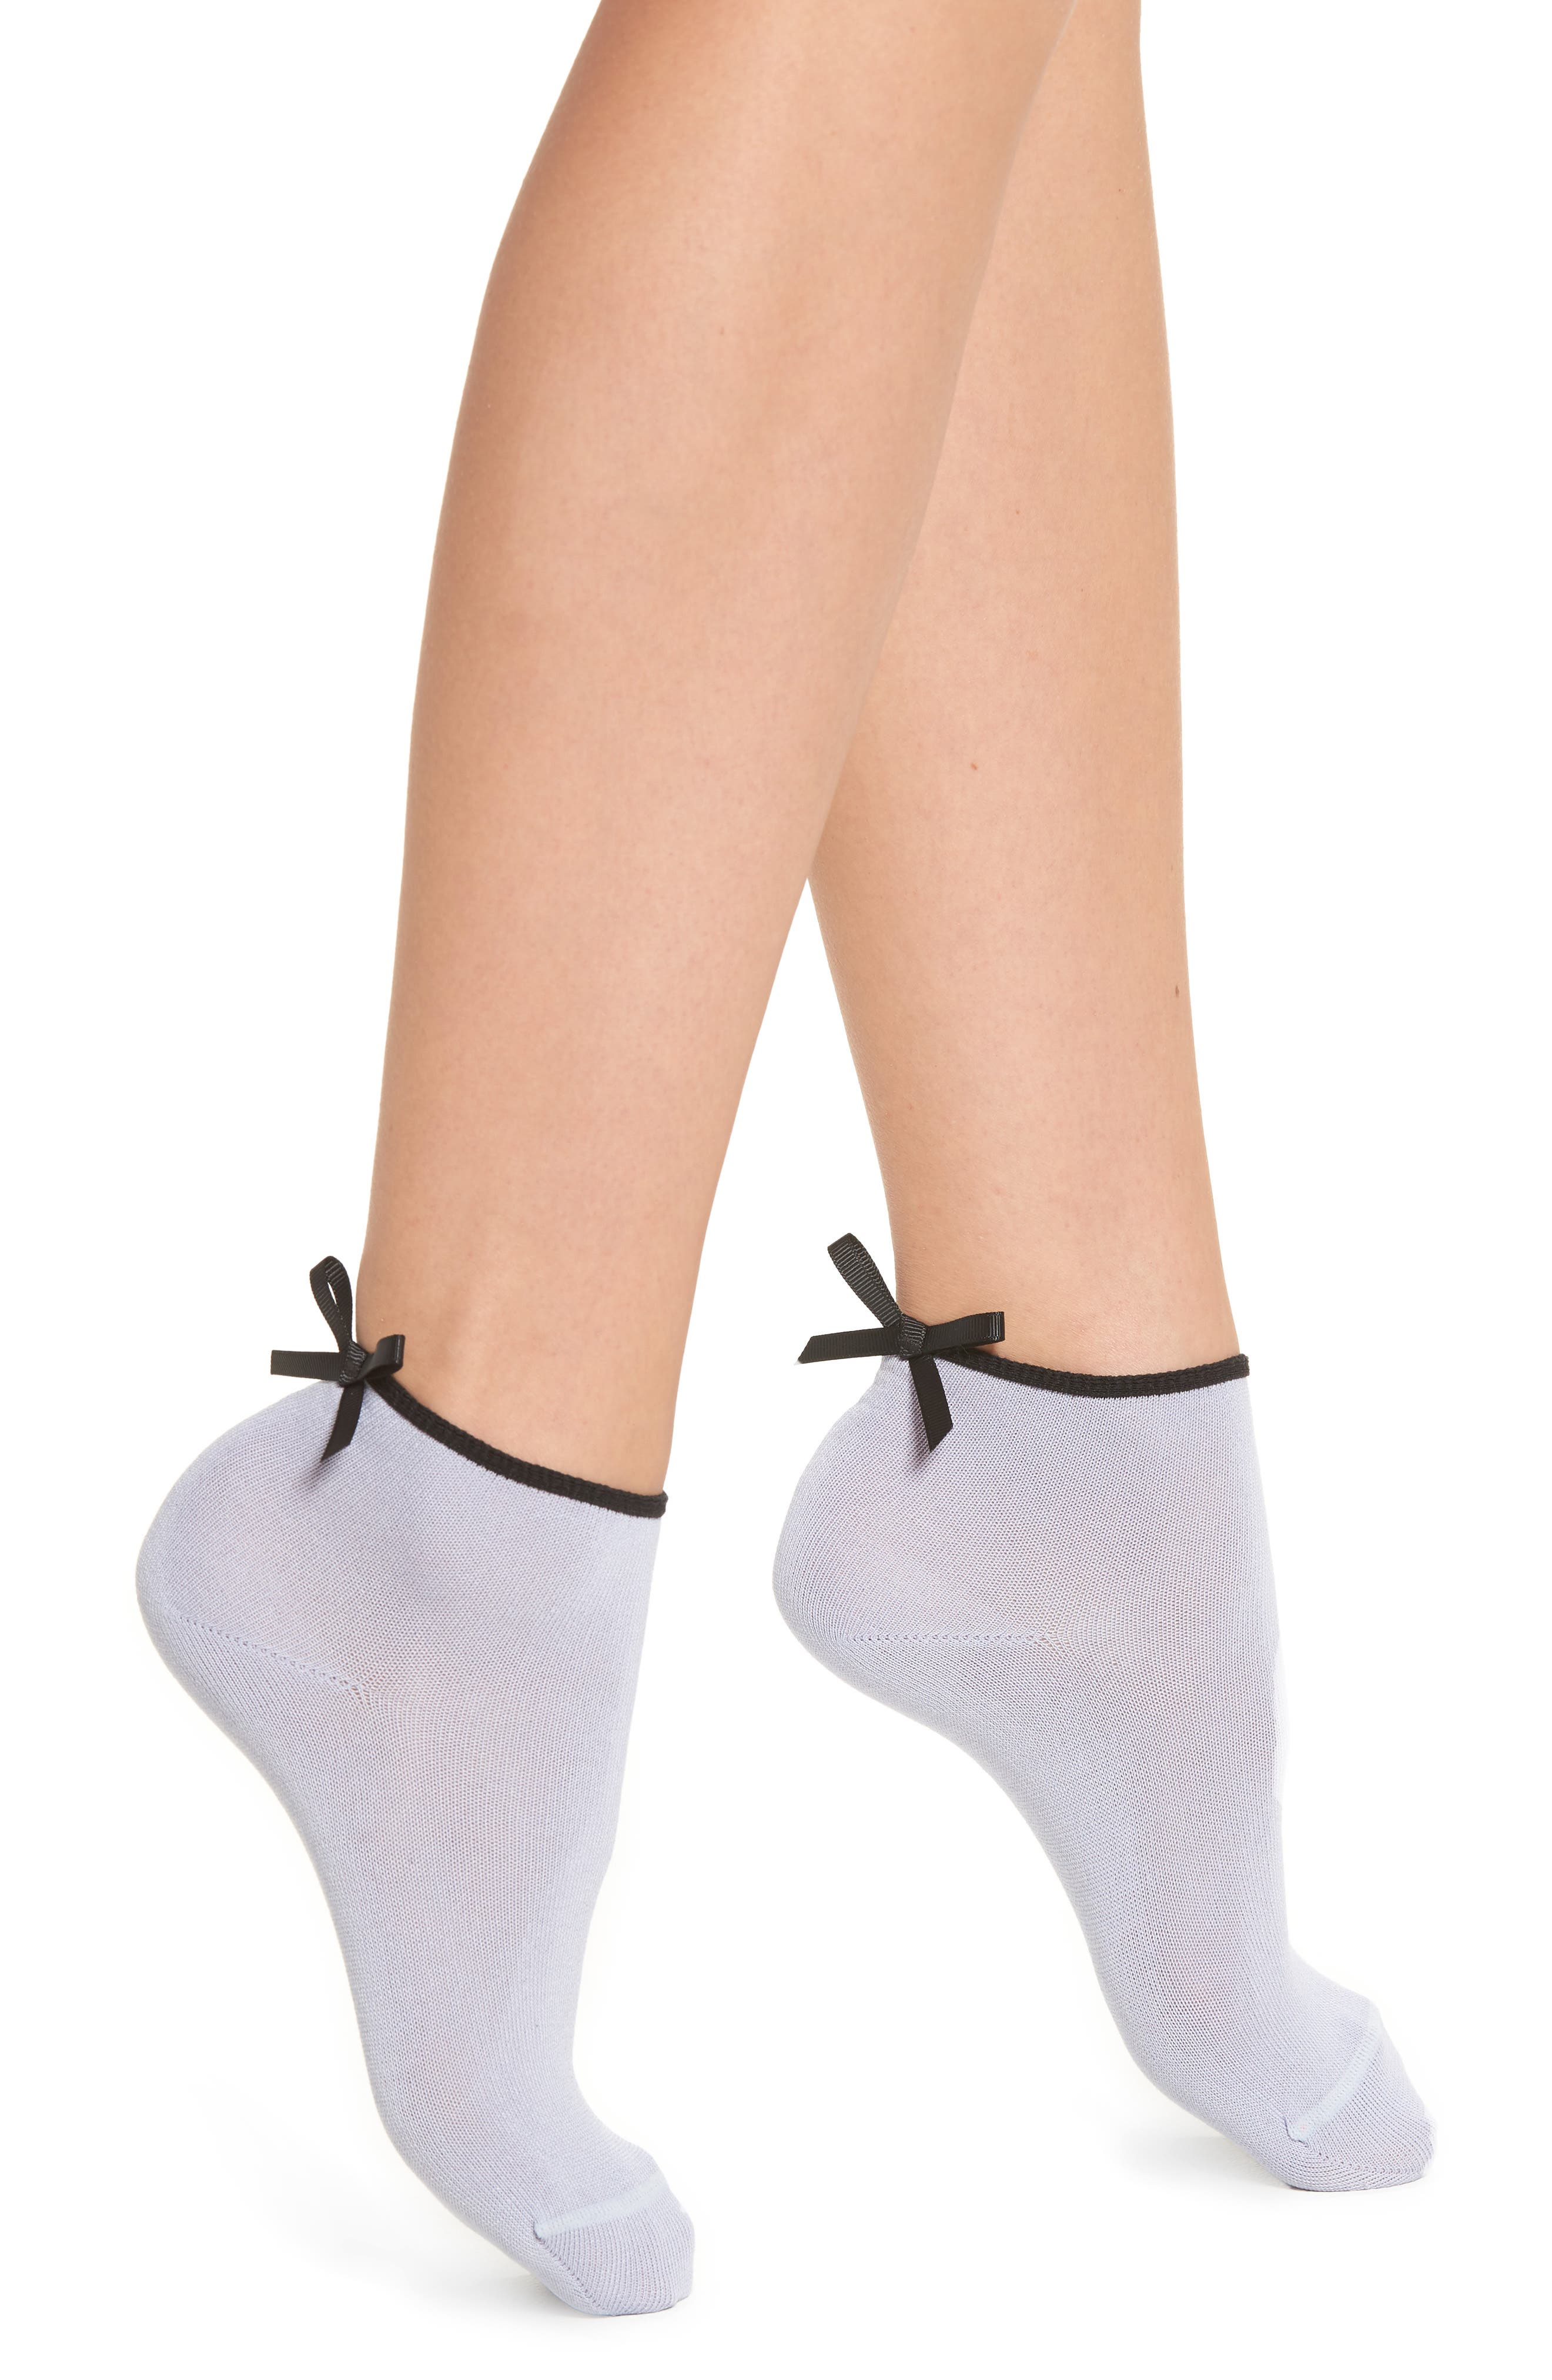 Bow Back Ankle Socks,                             Main thumbnail 1, color,                             PERIWINKLE